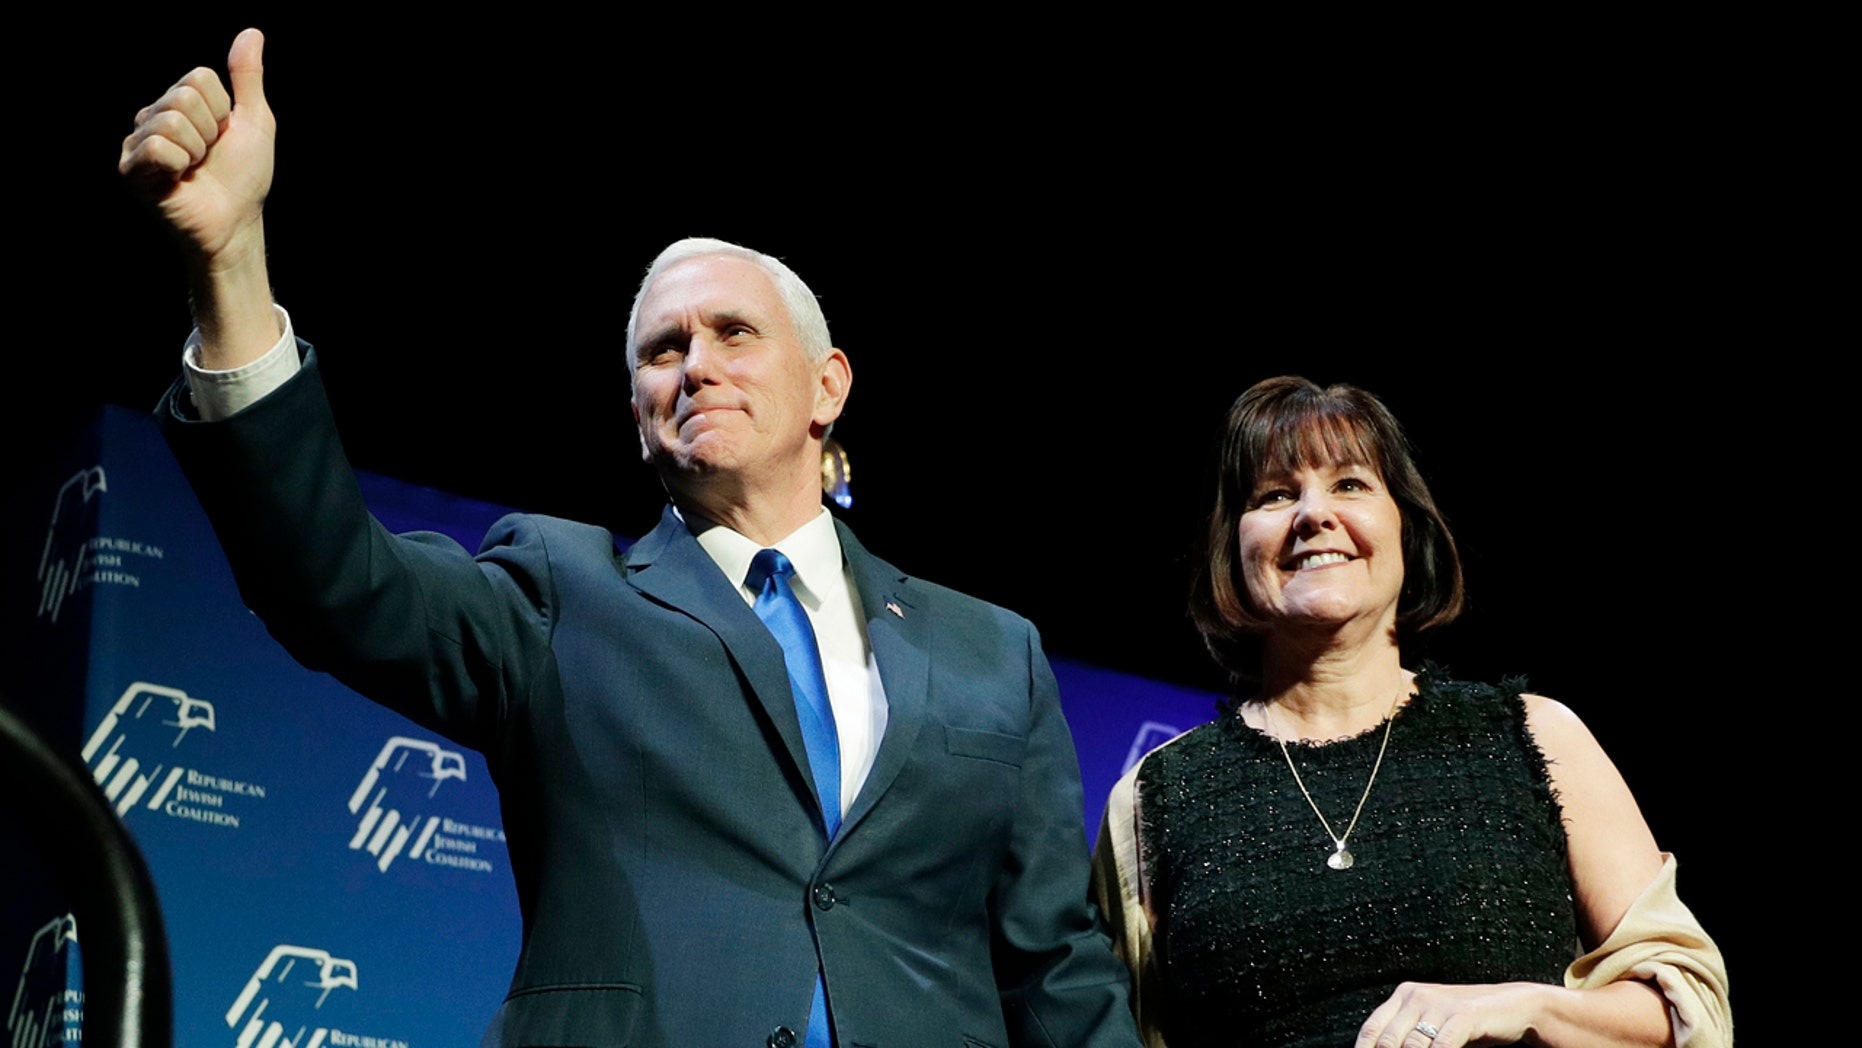 Vice President Mike Pence, left, takes the stage with his wife Karen Pence at the Republican Jewish Coalition annual leadership meeting, Friday, Feb. 24, 2017, in Las Vegas. (AP Photo/John Locher)